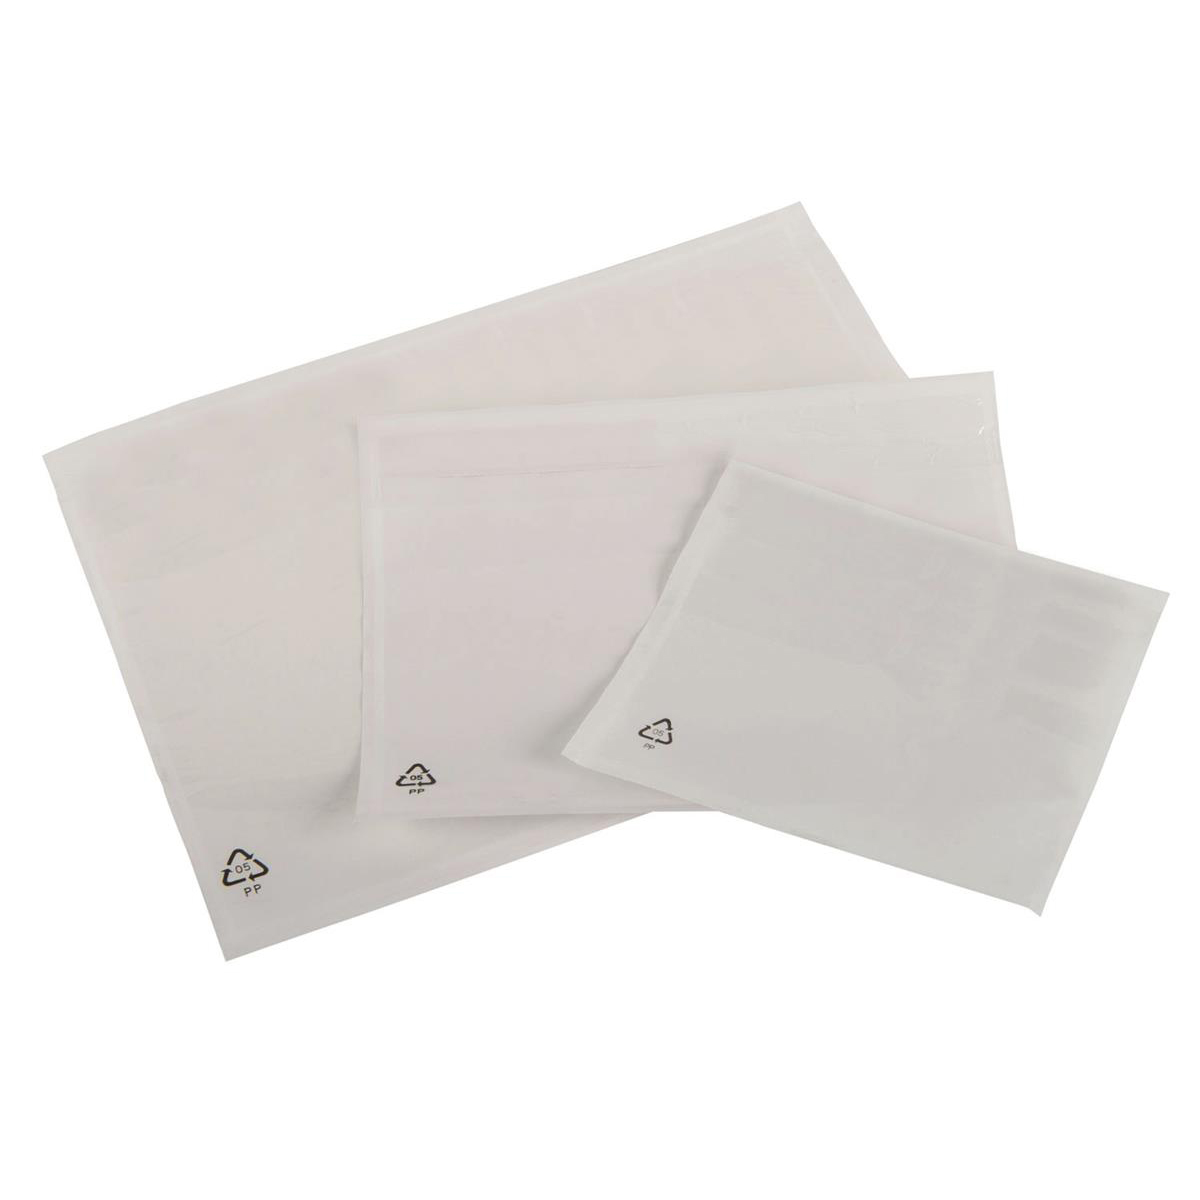 Documents Enclosed Packing List Document Wallet Polythene Plain Waterproof A7 113x100mm White Ref DE001 Pack 1000